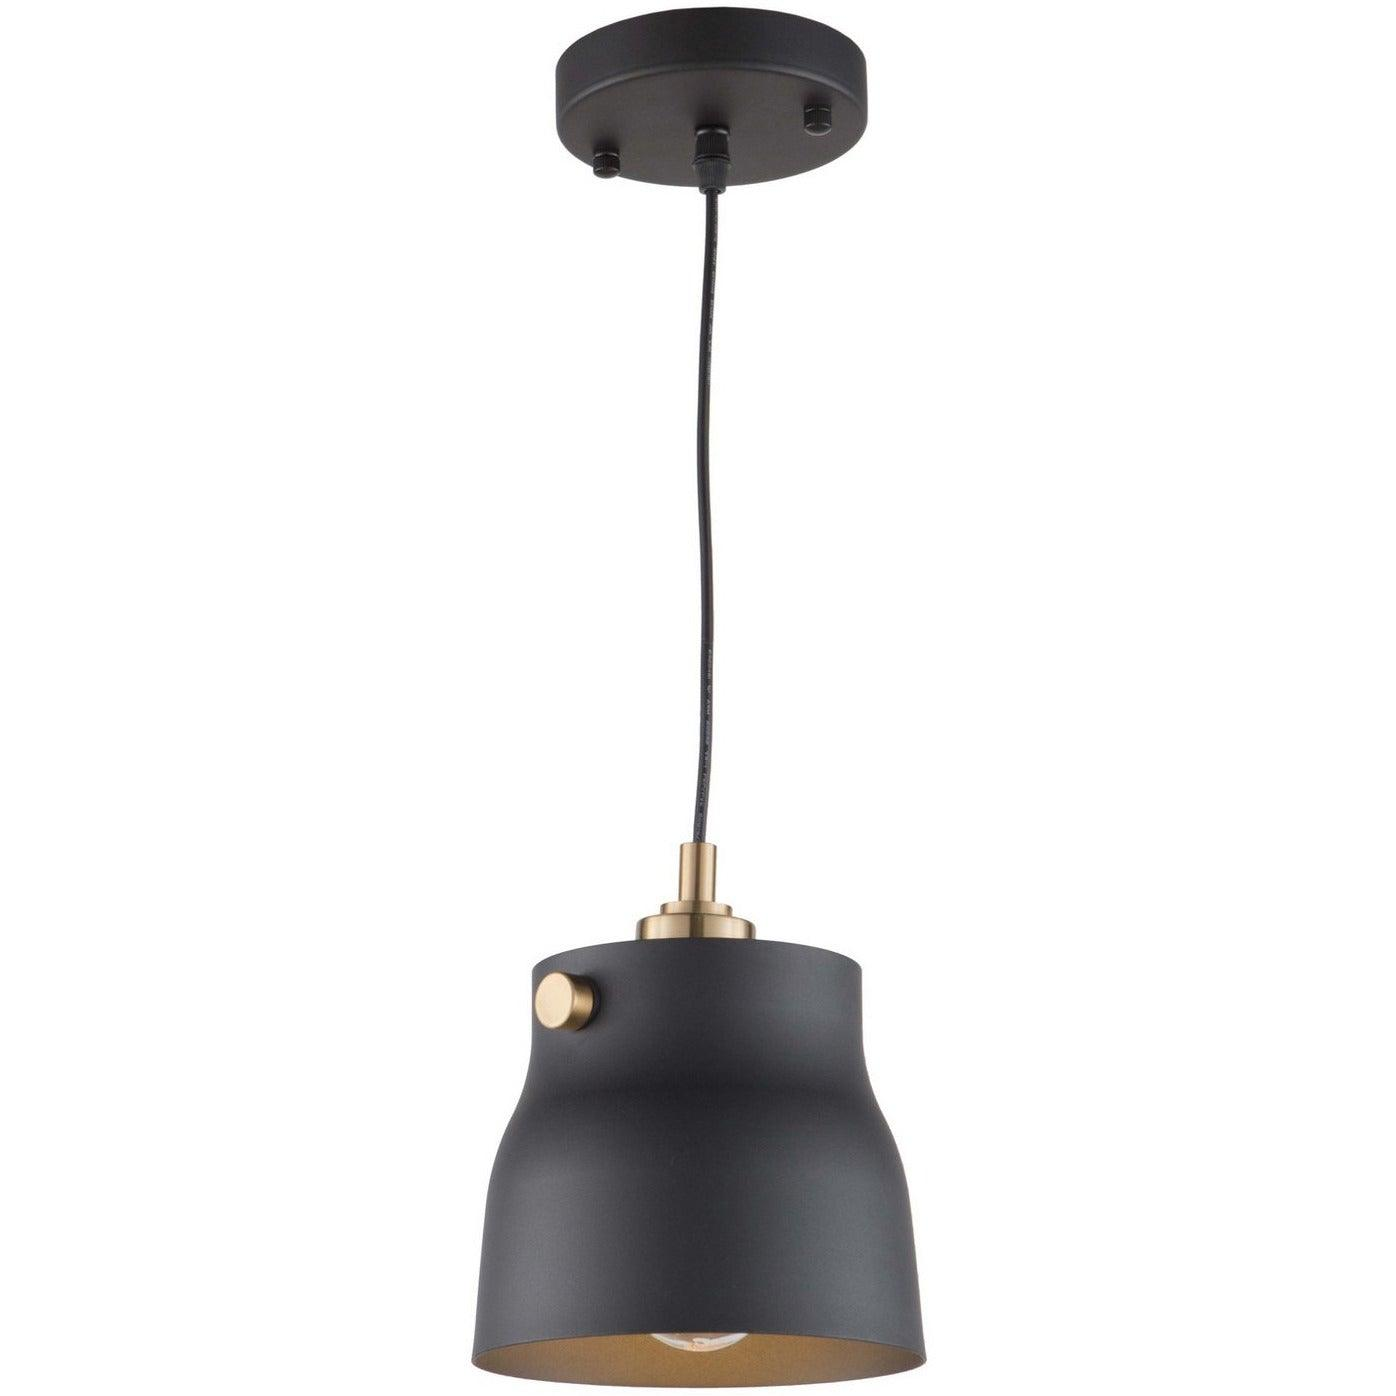 Artcraft Lighting - AC11361VB - One Light Pendant - Euro Industrial - Matte Black & Harvest Brass